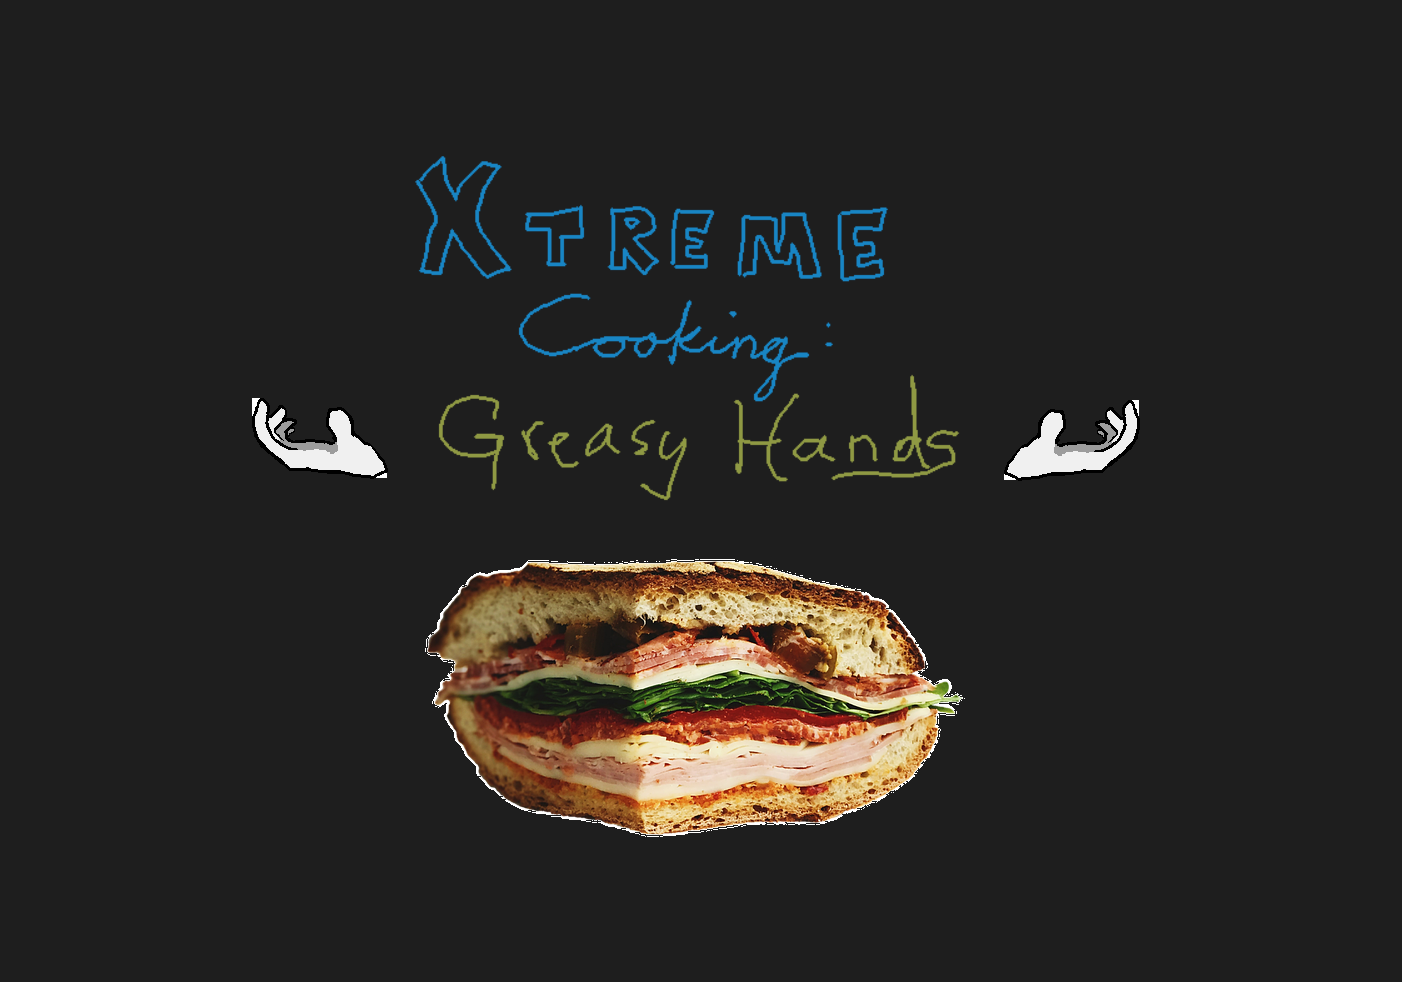 Xtreme Cooking: Greasy Hands